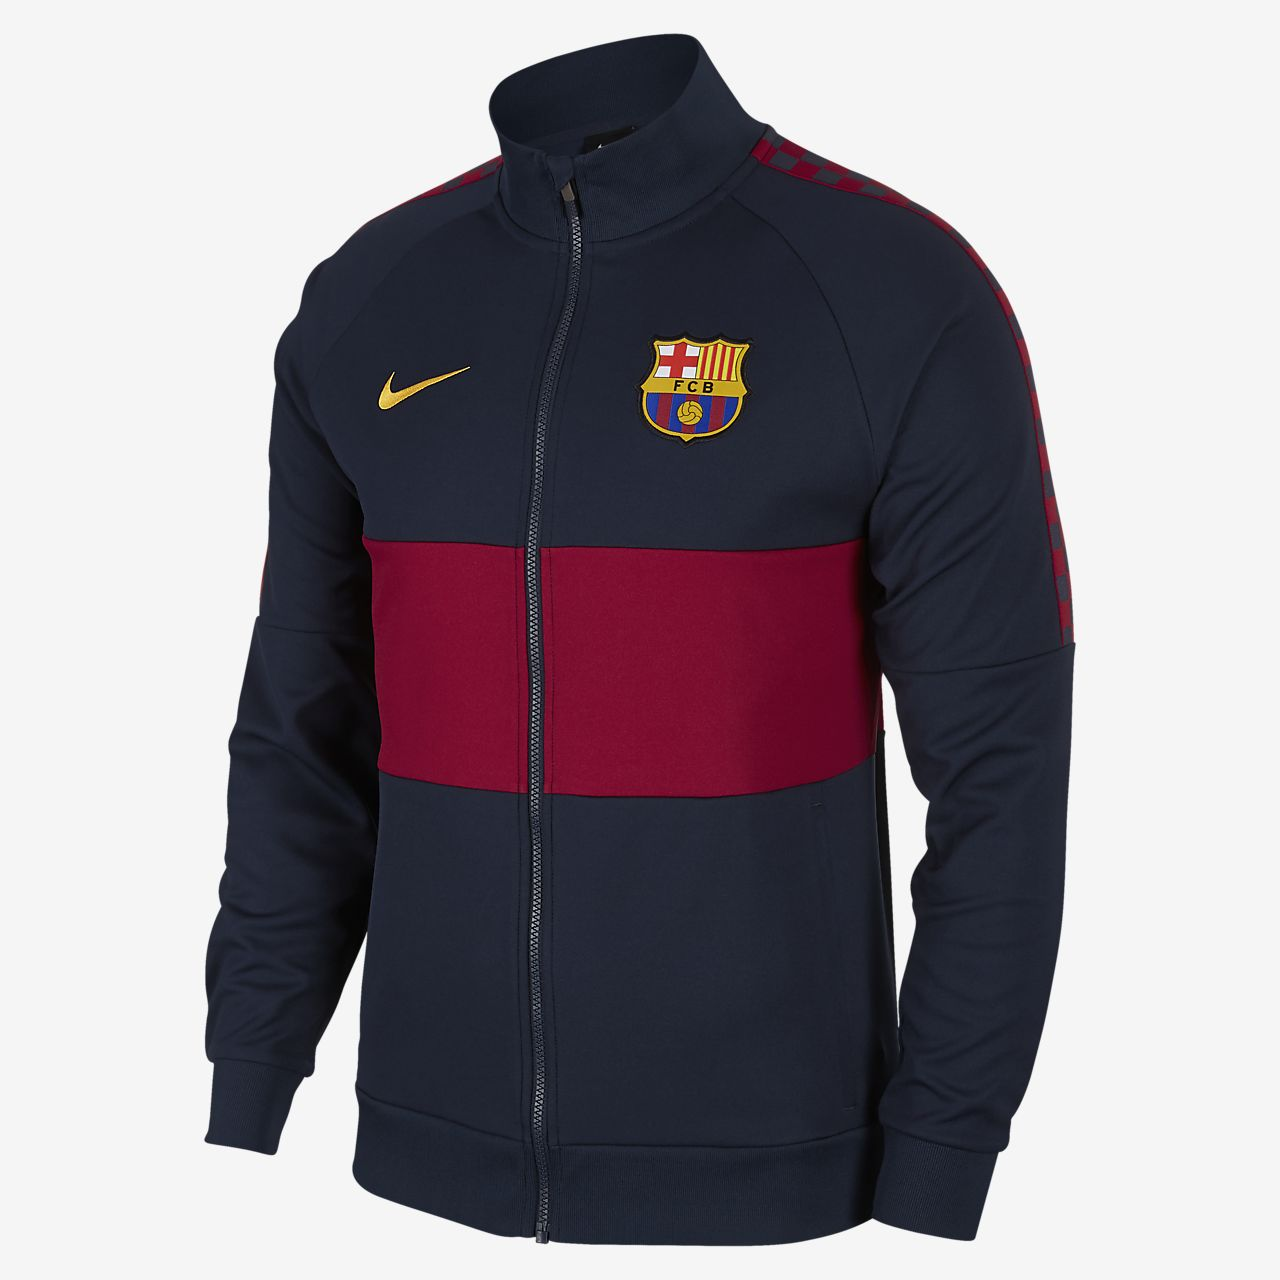 FC Barcelona Men's Jacket